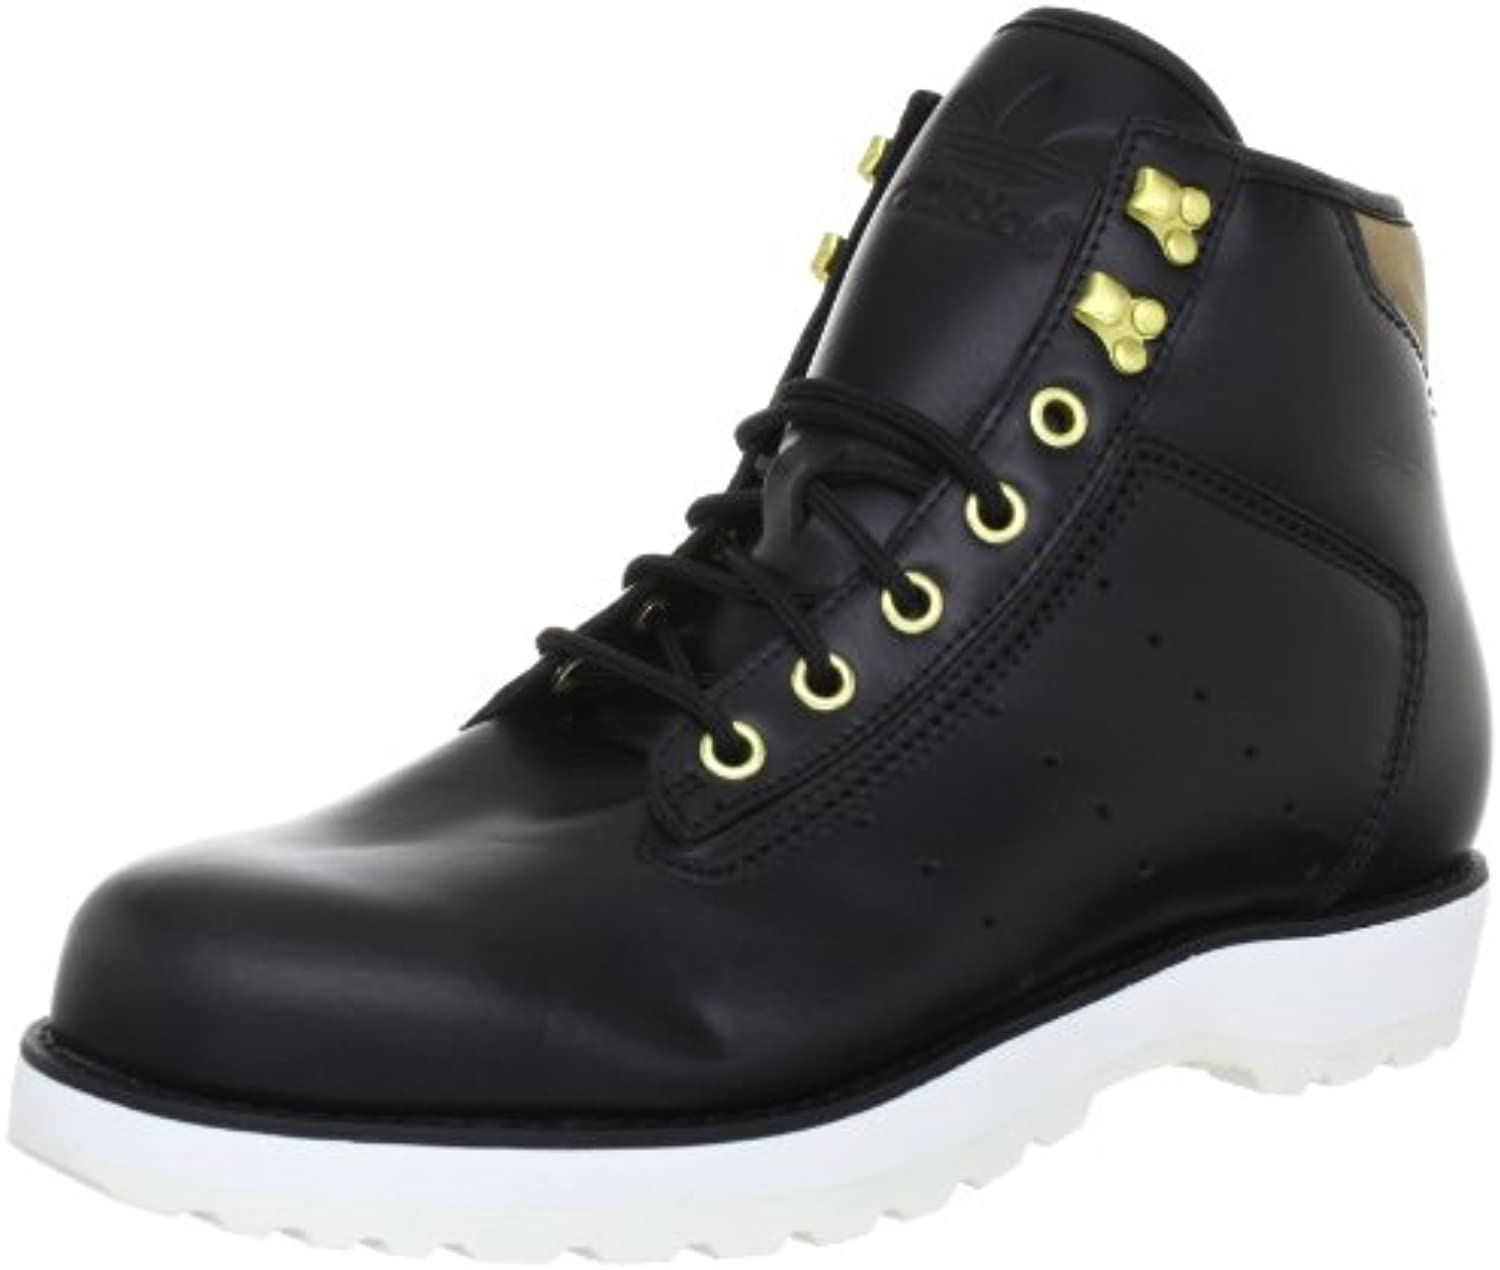 Adidas Originals Adi Navvy Boot - Botas